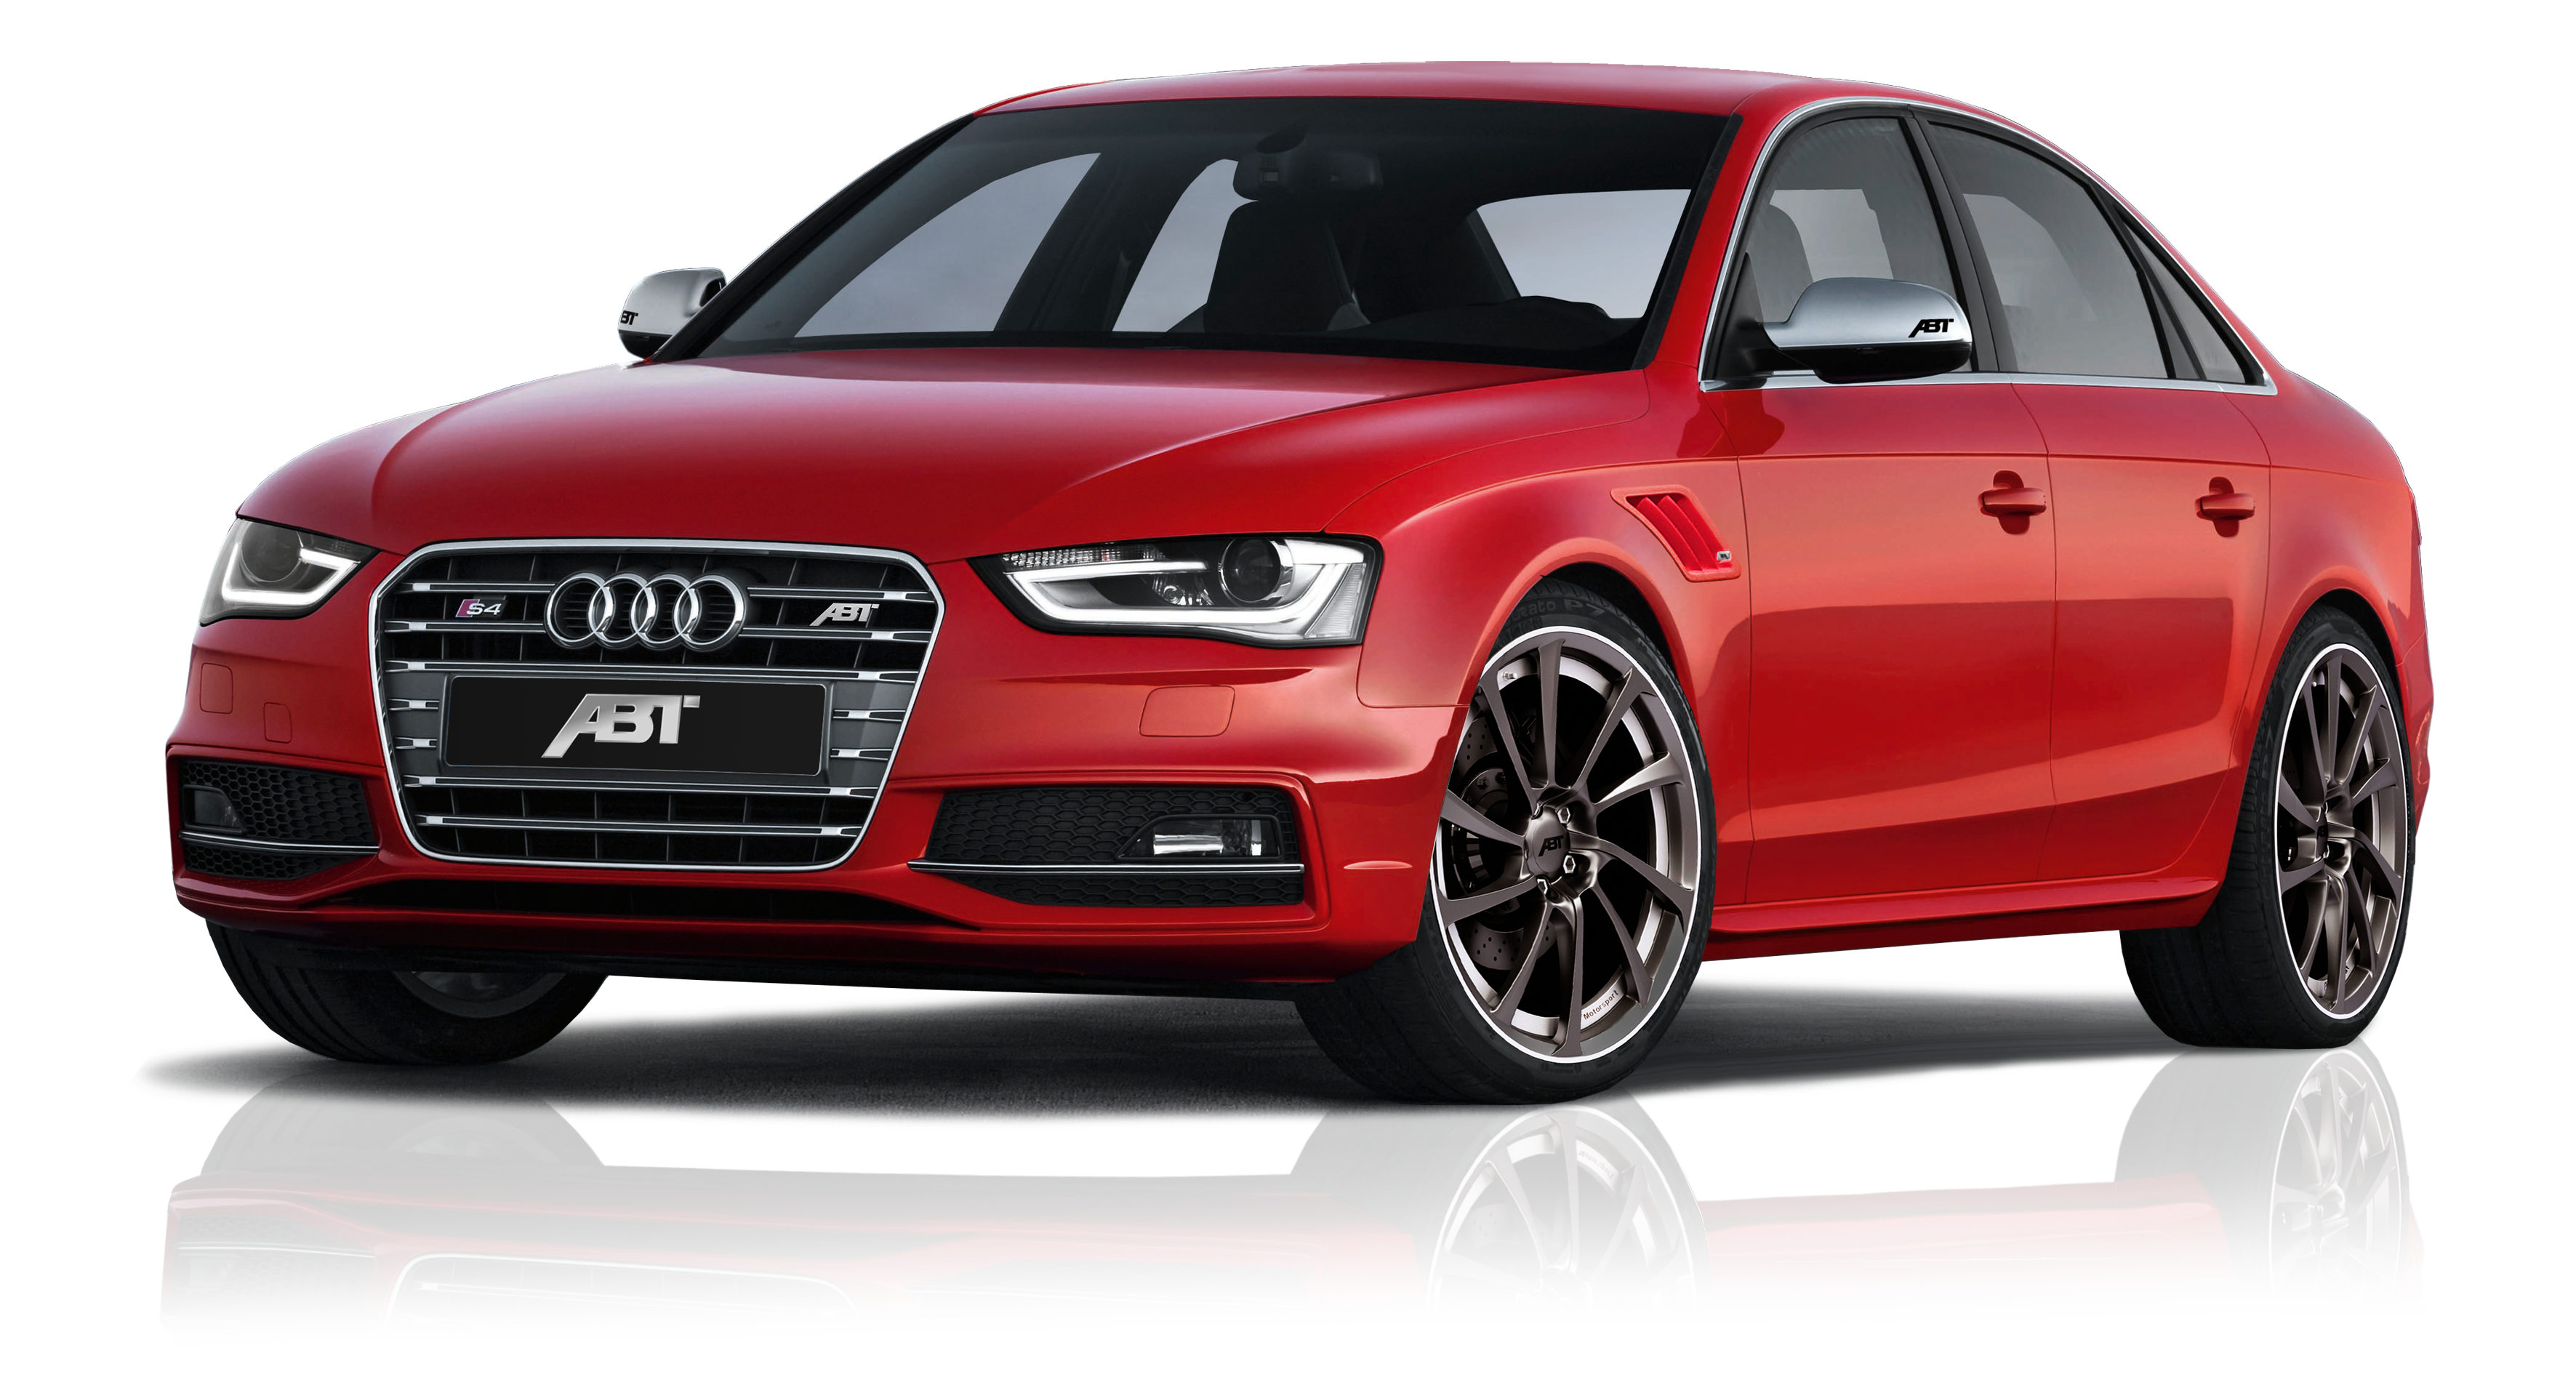 Audi car clipart clipart library Audi PNG Image - PurePNG | Free transparent CC0 PNG Image Library clipart library